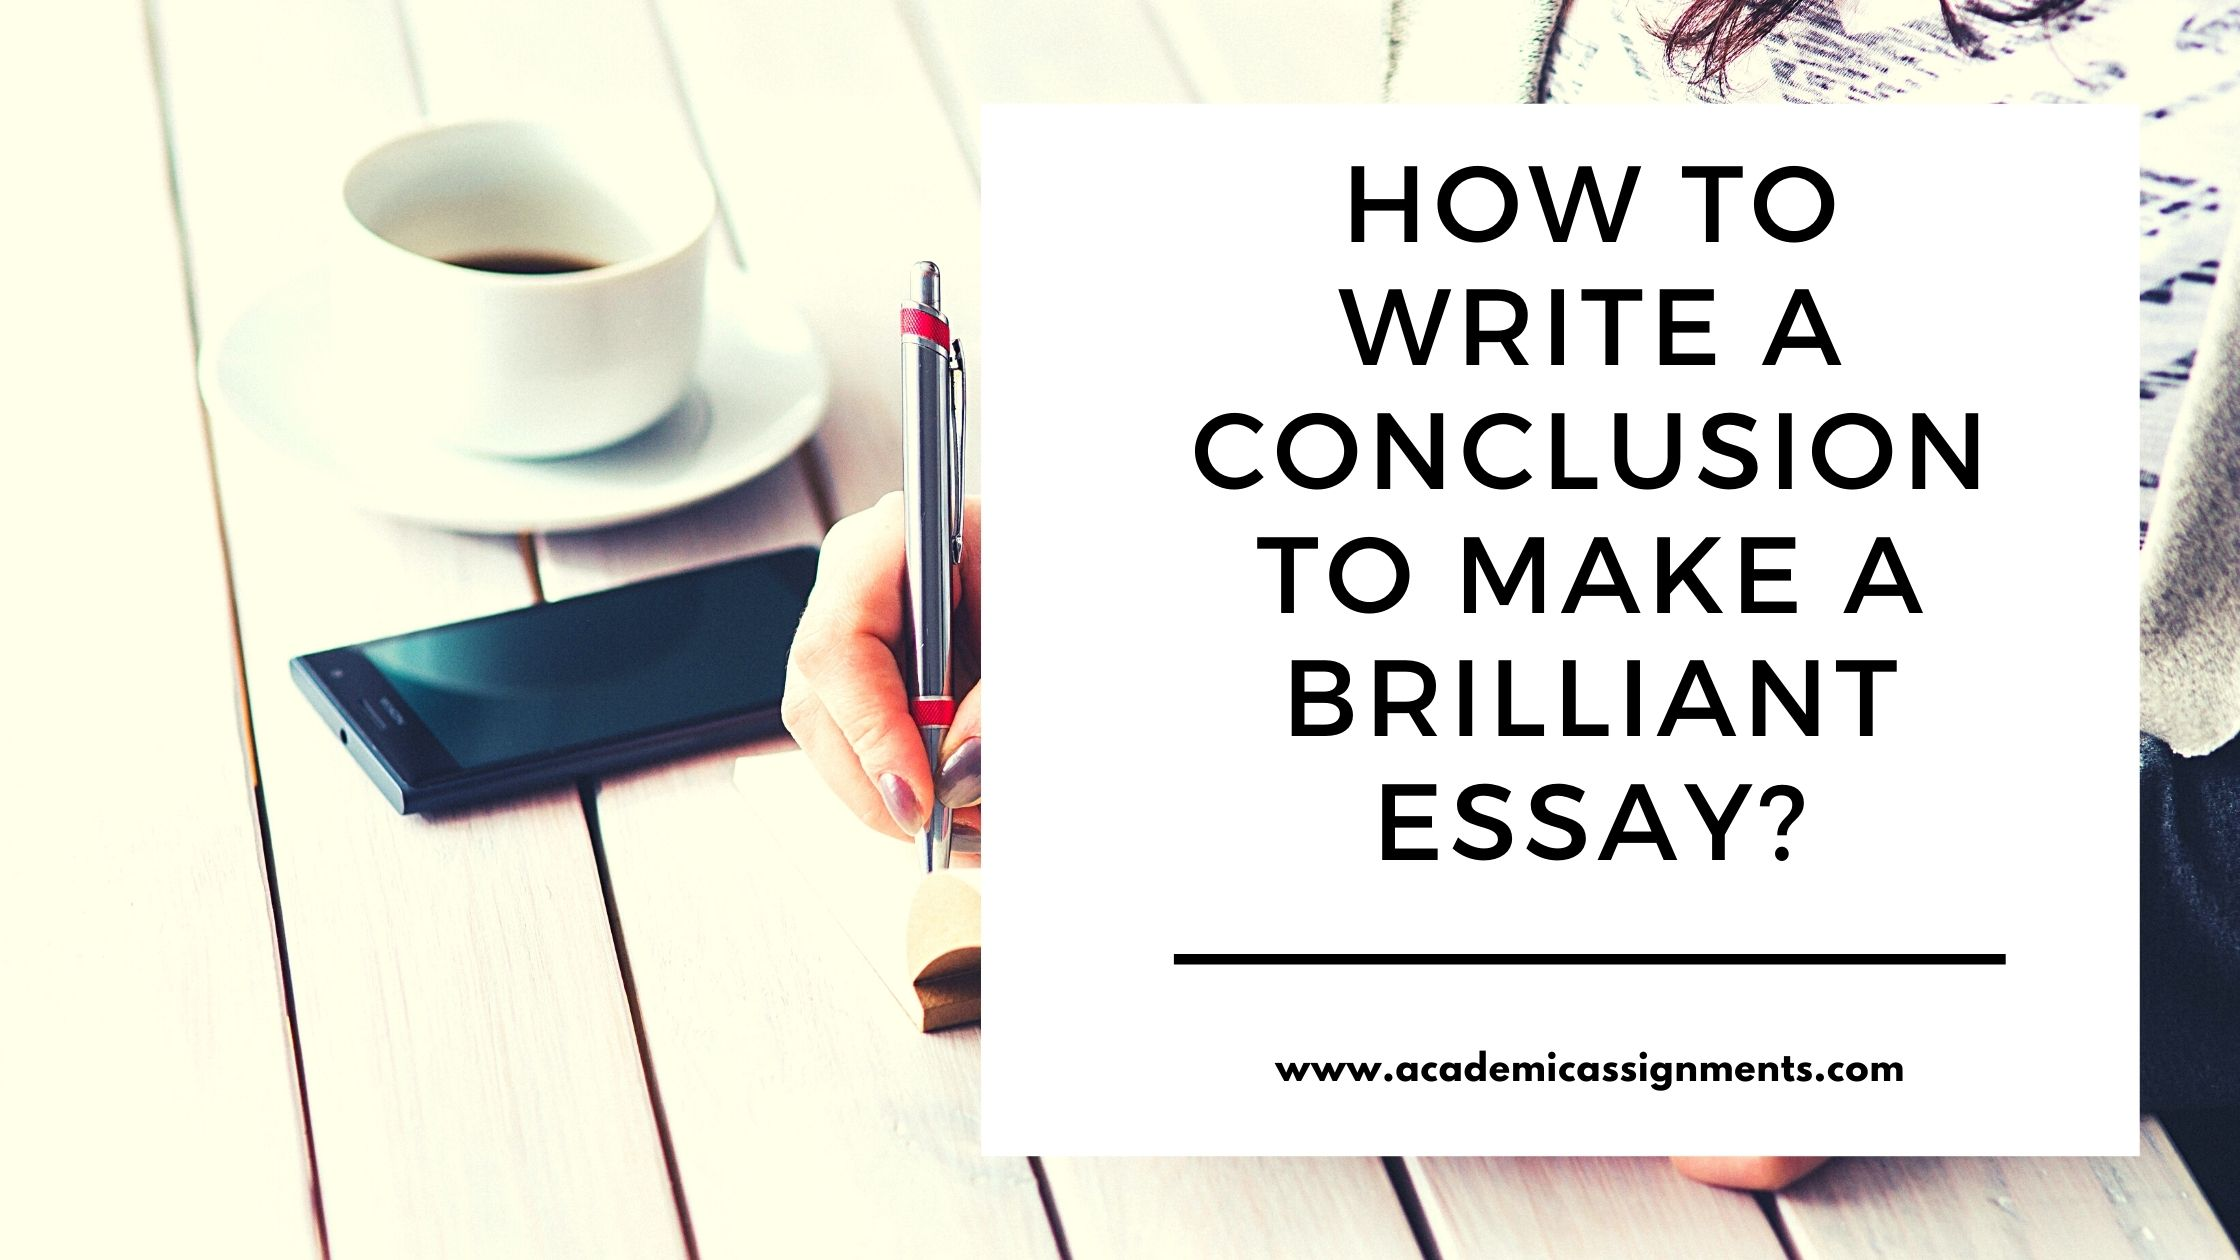 How to Write a Conclusion to Make A Brilliant Essay